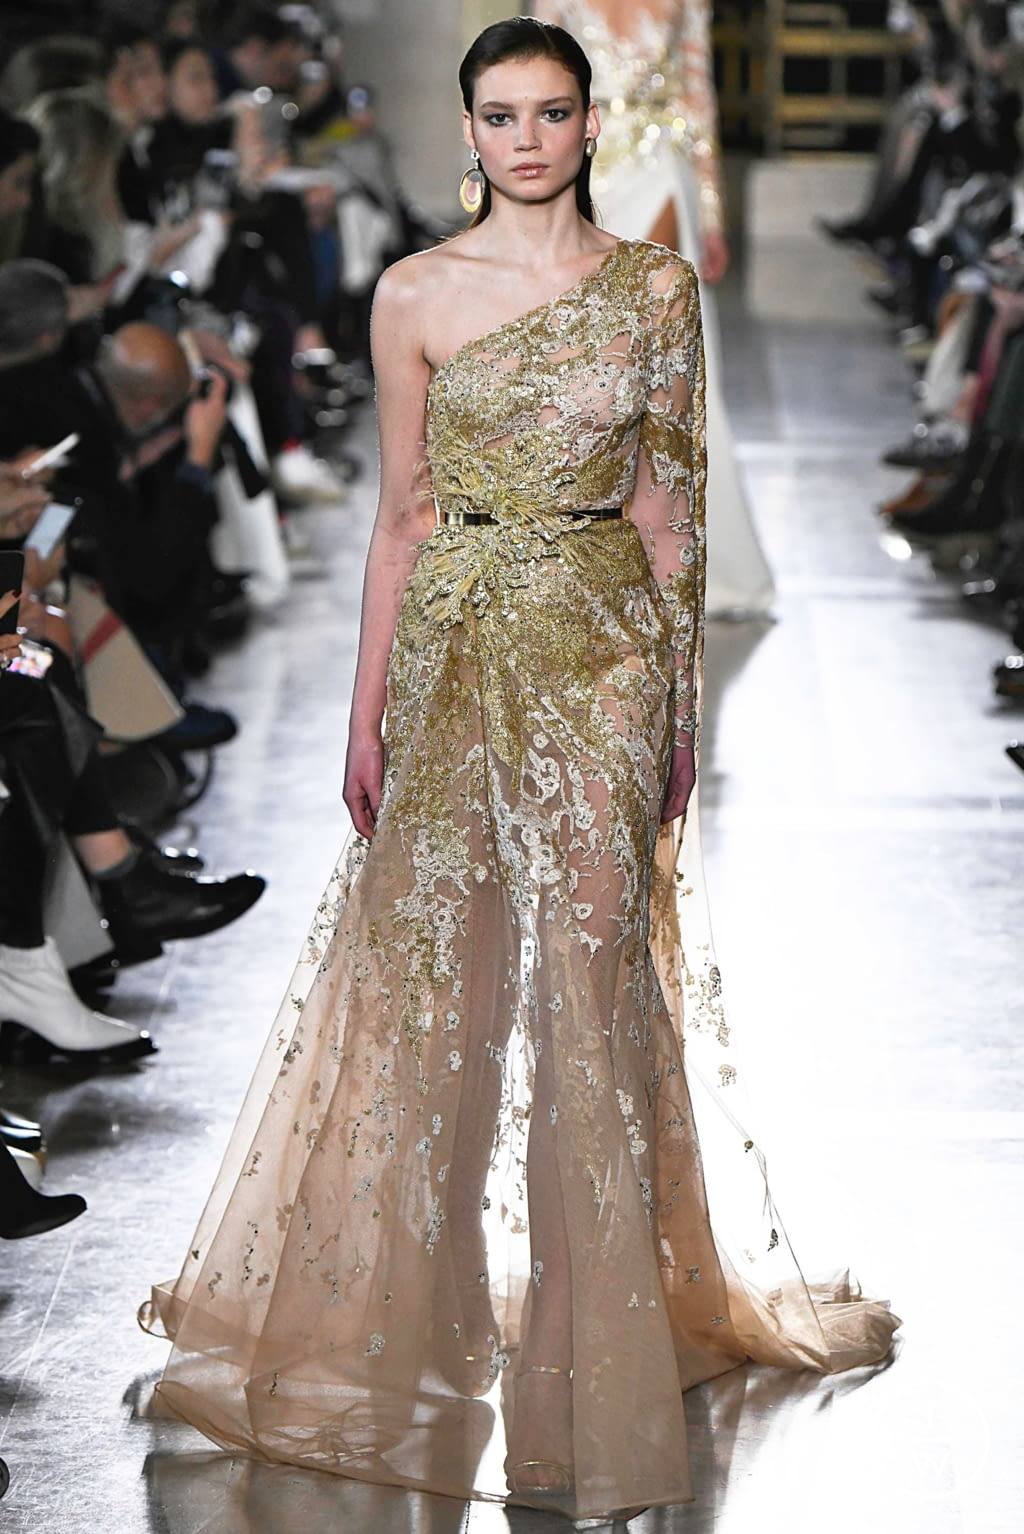 Fashion Week Paris Spring/Summer 2019 look 24 from the Elie Saab collection 高级定制